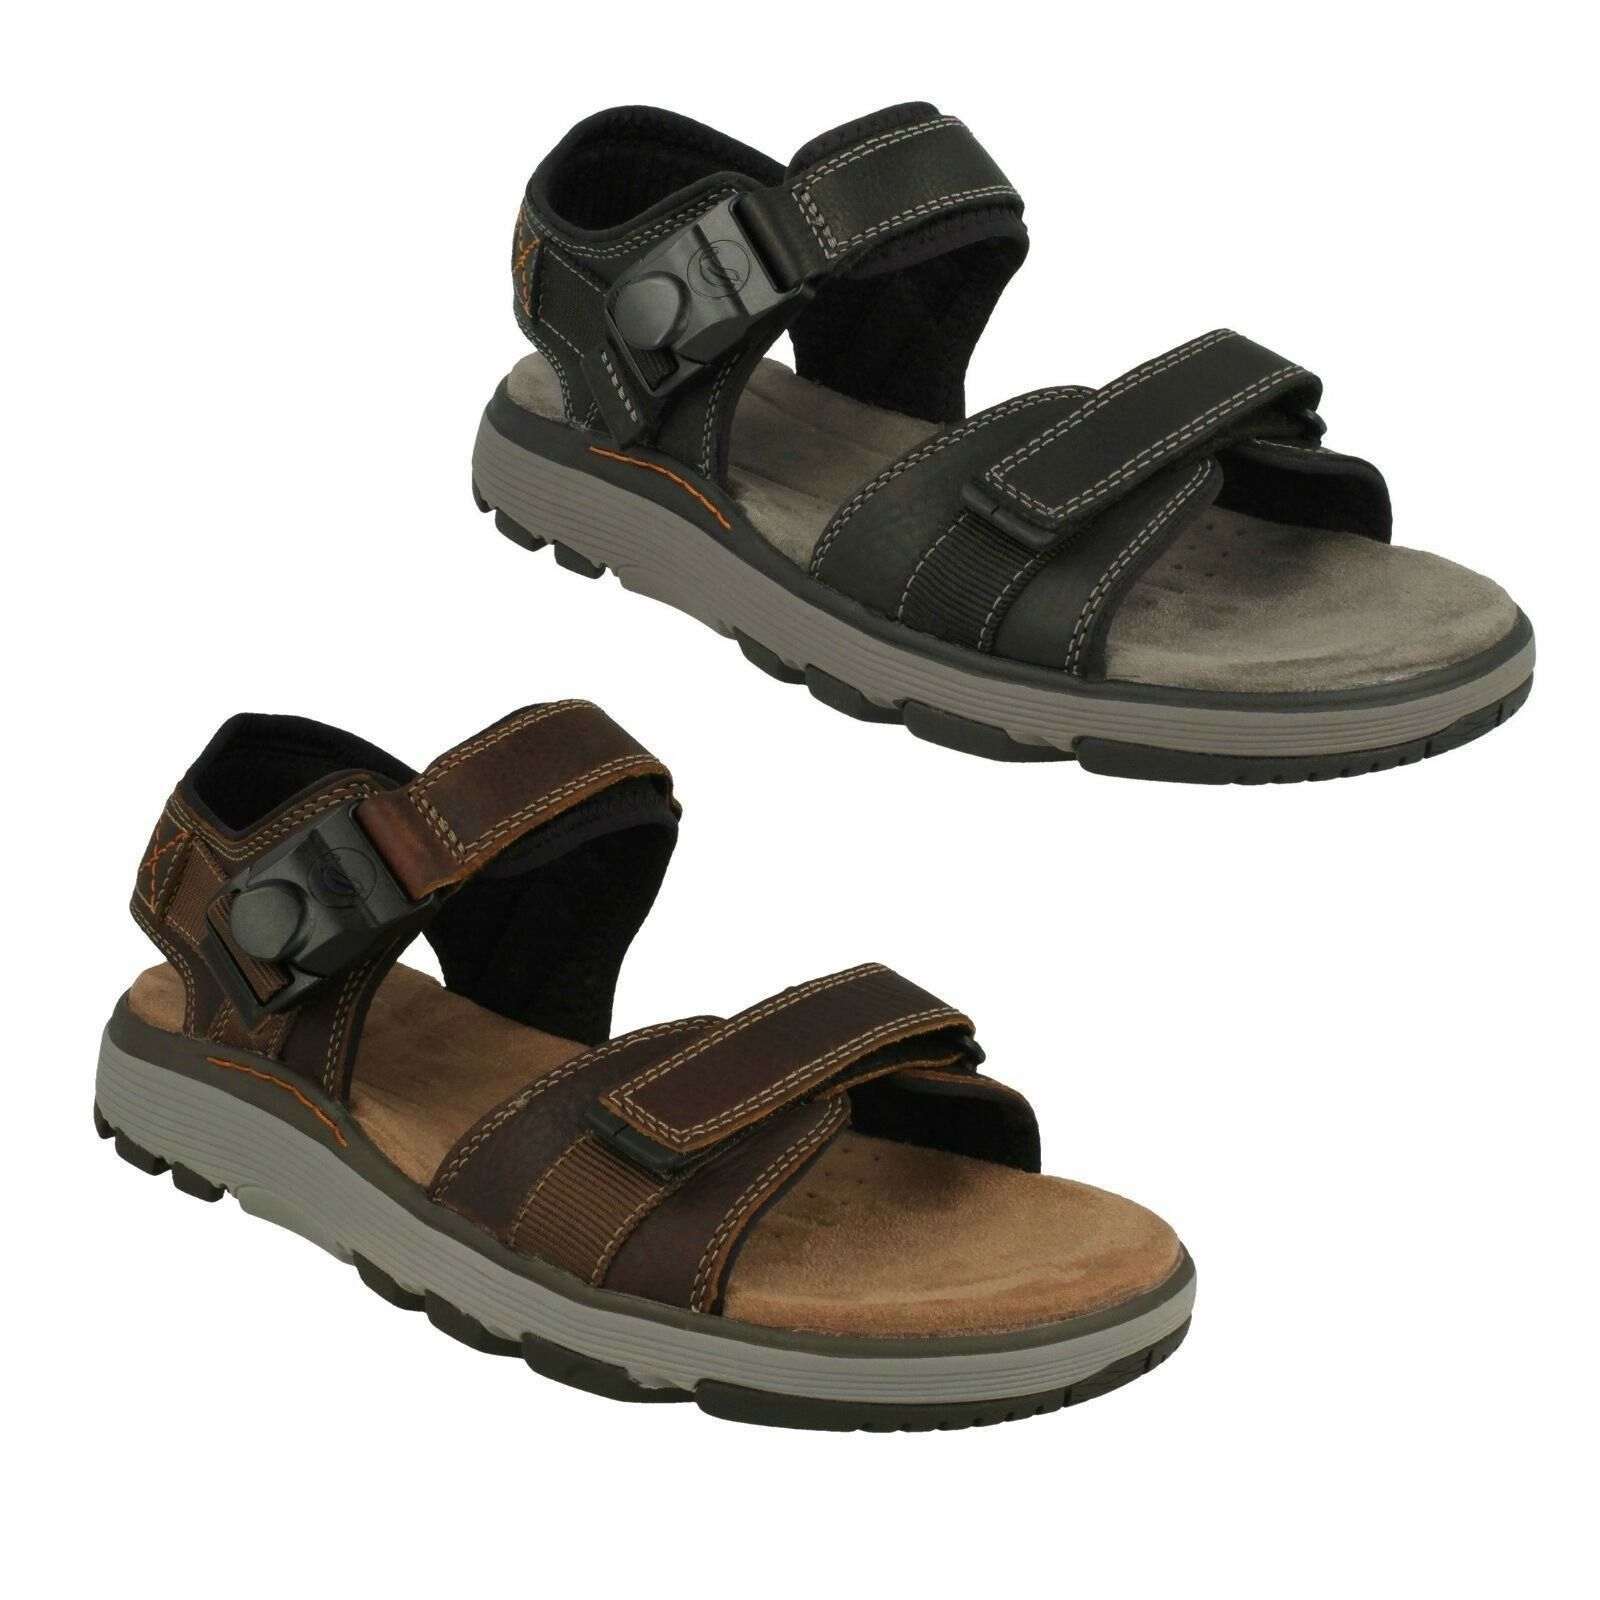 MENS CLARKS LEATHER UNSTRUCTURED BUCKLE CASUAL SUMMER SANDALS SHOES UN TREK PART